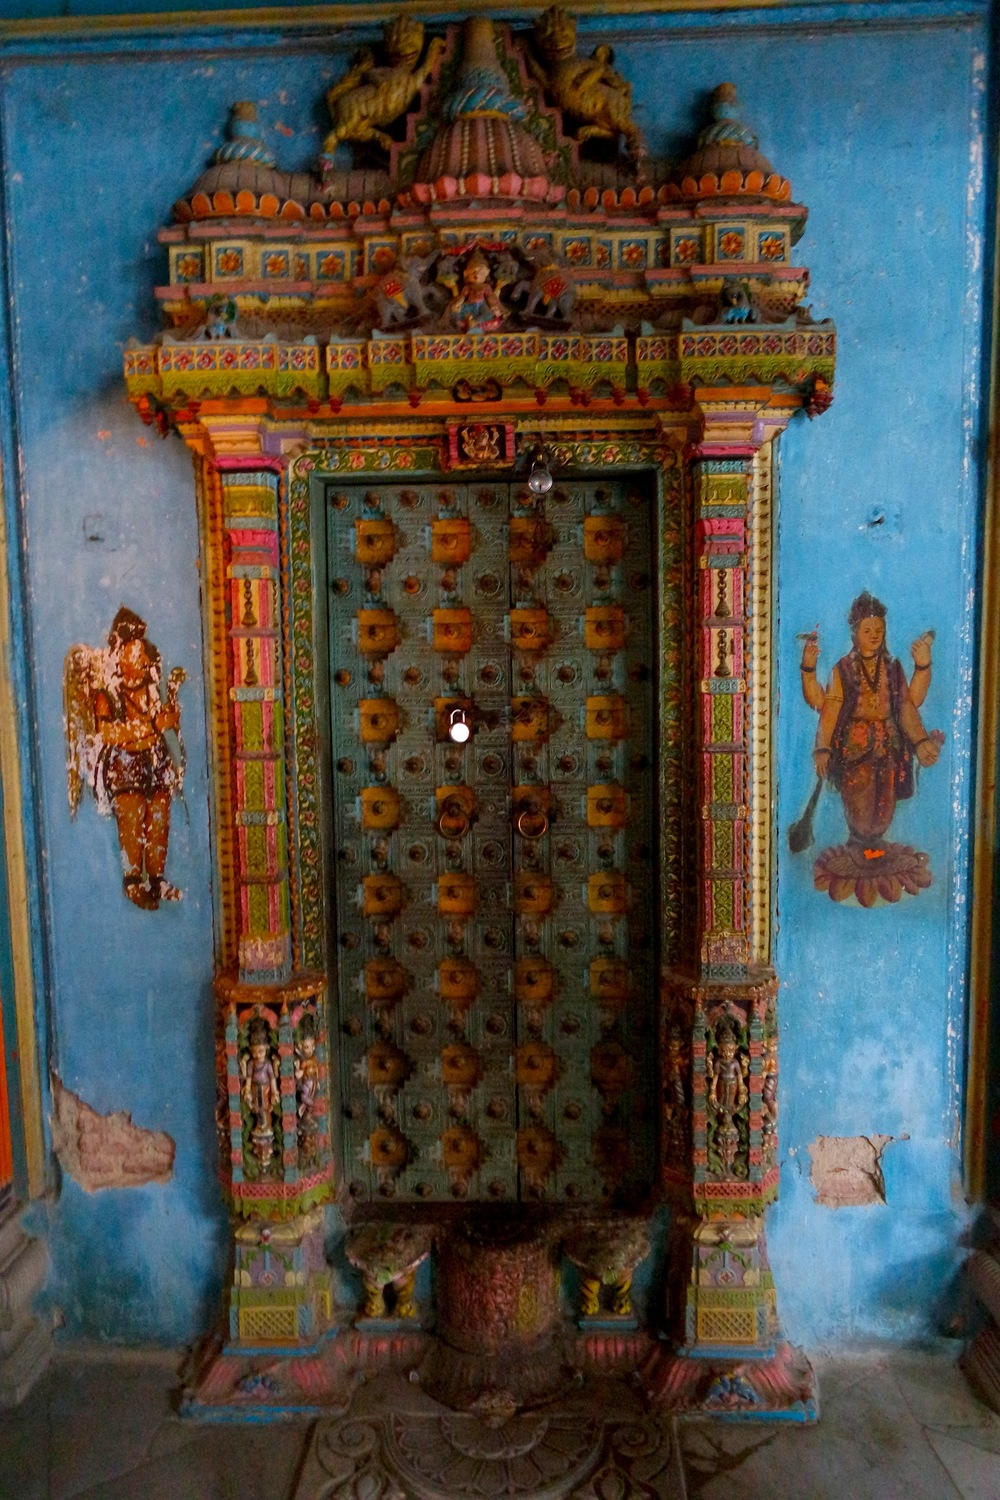 An intricately carved and painted door at the wooden Dhundiraj Ganpati Mandir Temple in Vadodara, India